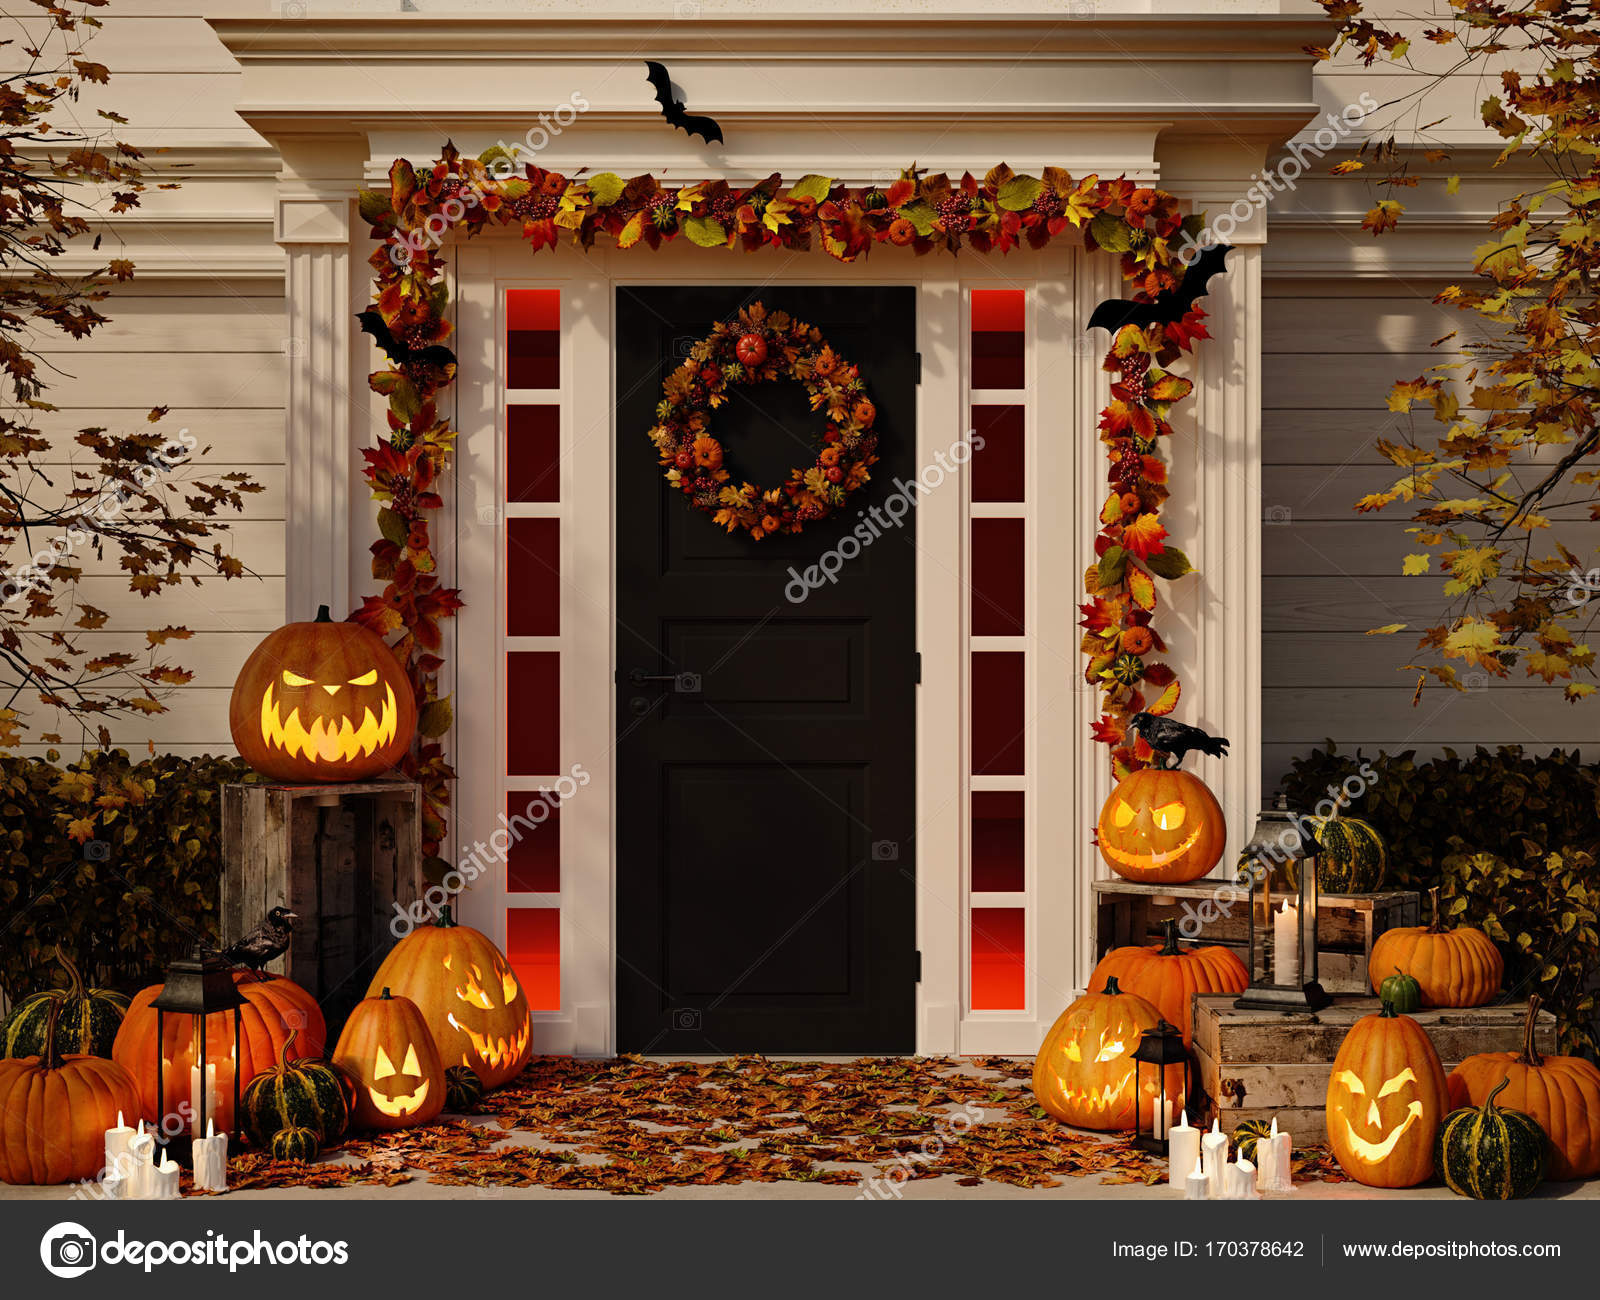 Casas Decoradas De Halloween Casa Con Calabazas De Halloween Decoradas Render 3d Fotos De